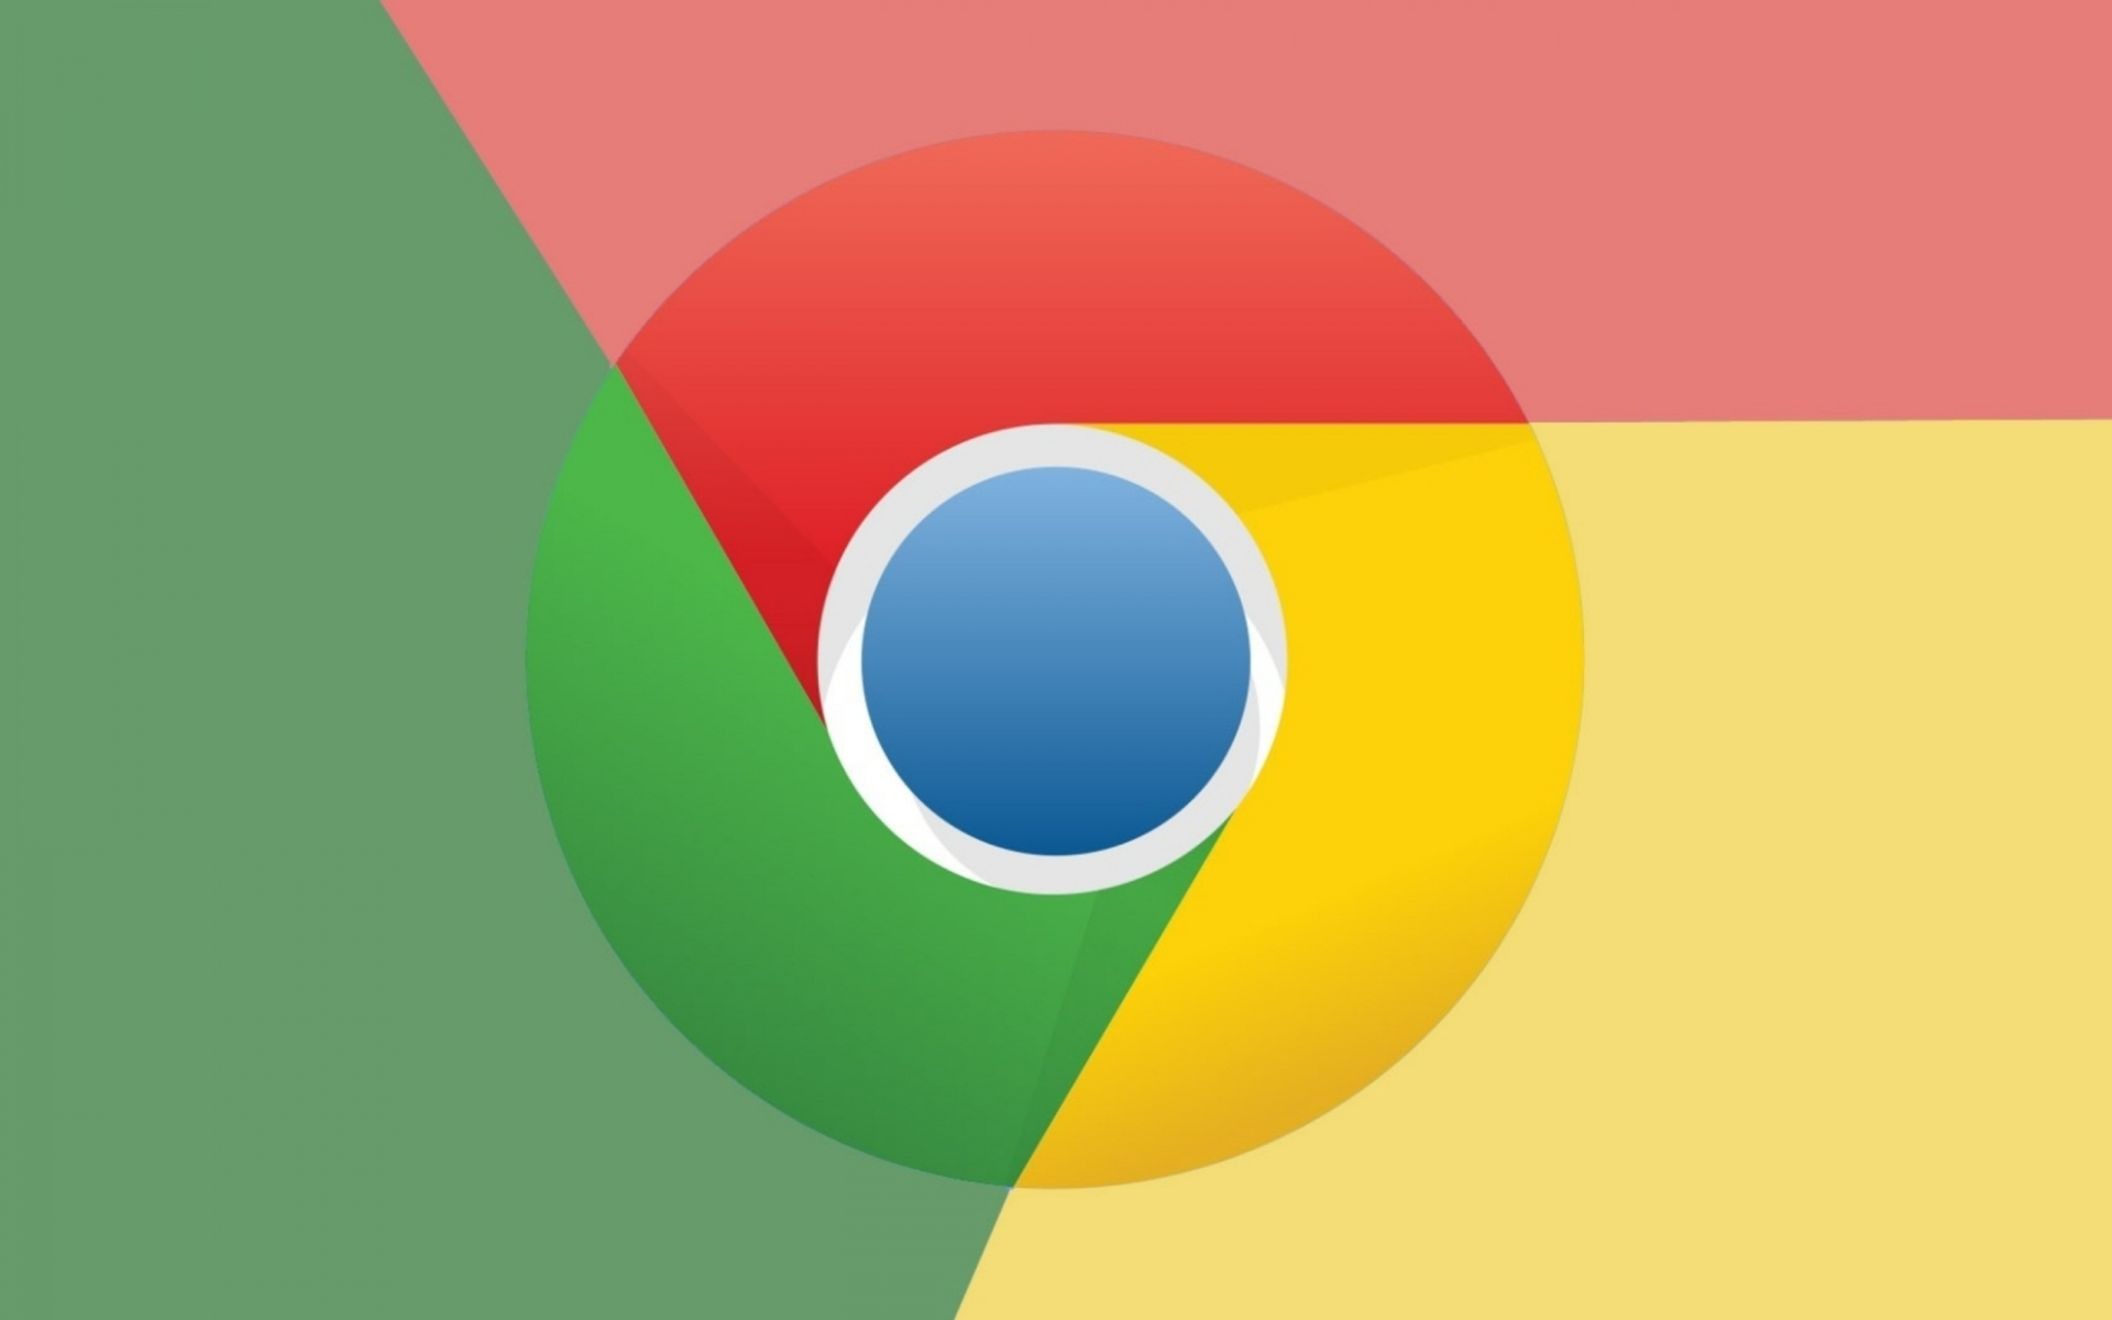 google chrome browser themes wallpaper desktop hd